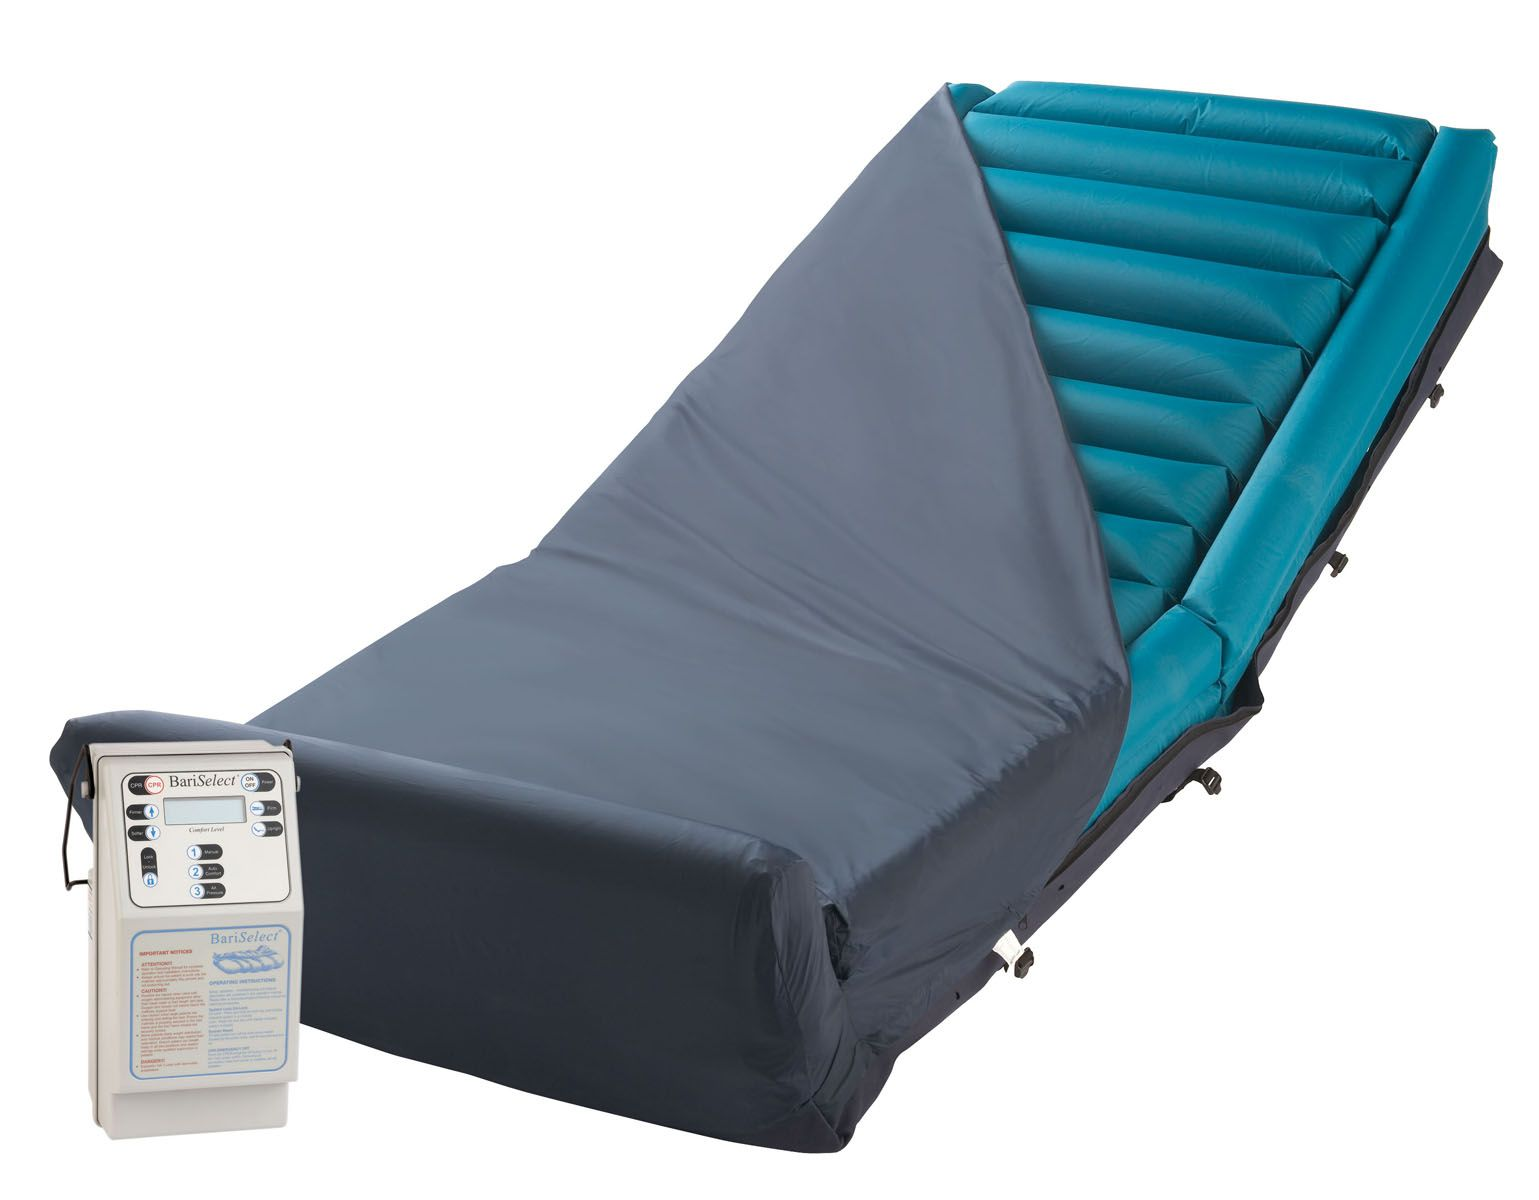 Medline MedTech Bariatric Mattress - True Low Air Loss, Bariselect, 54X80X10, Each - Model MDT24B54